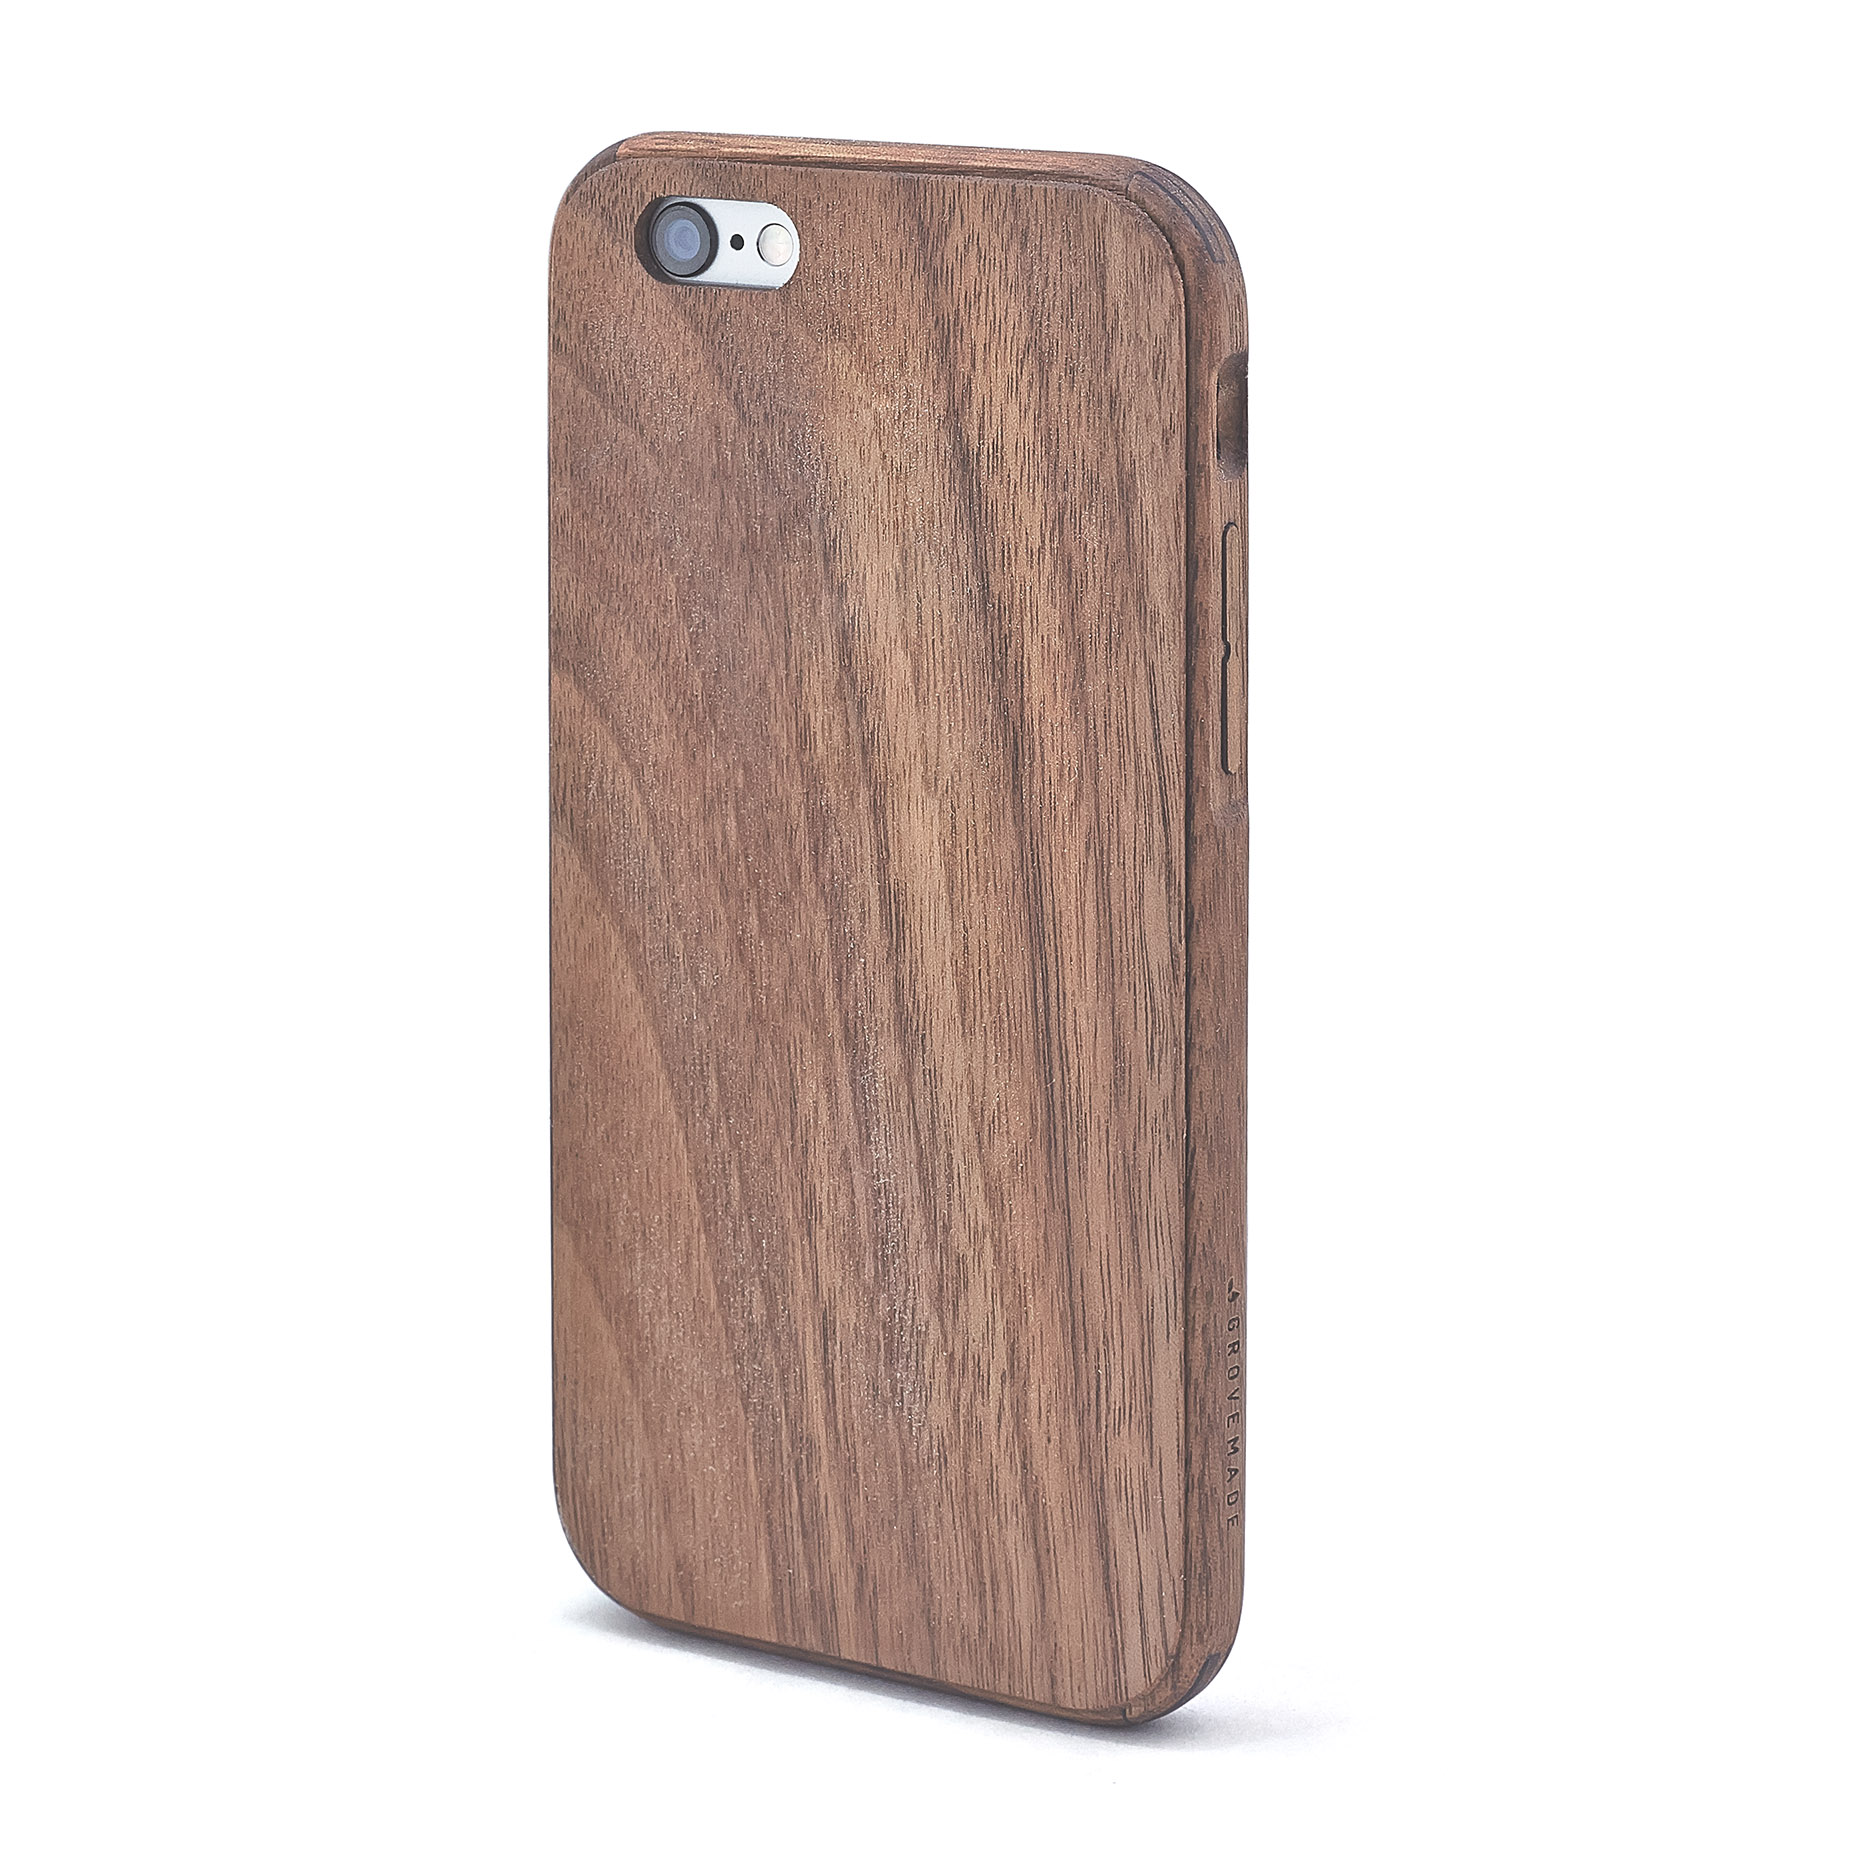 Case Design initial phone cases : Wood iPhone 7 Case u0026 SE/6/6S/Plus in Walnut by Grovemade